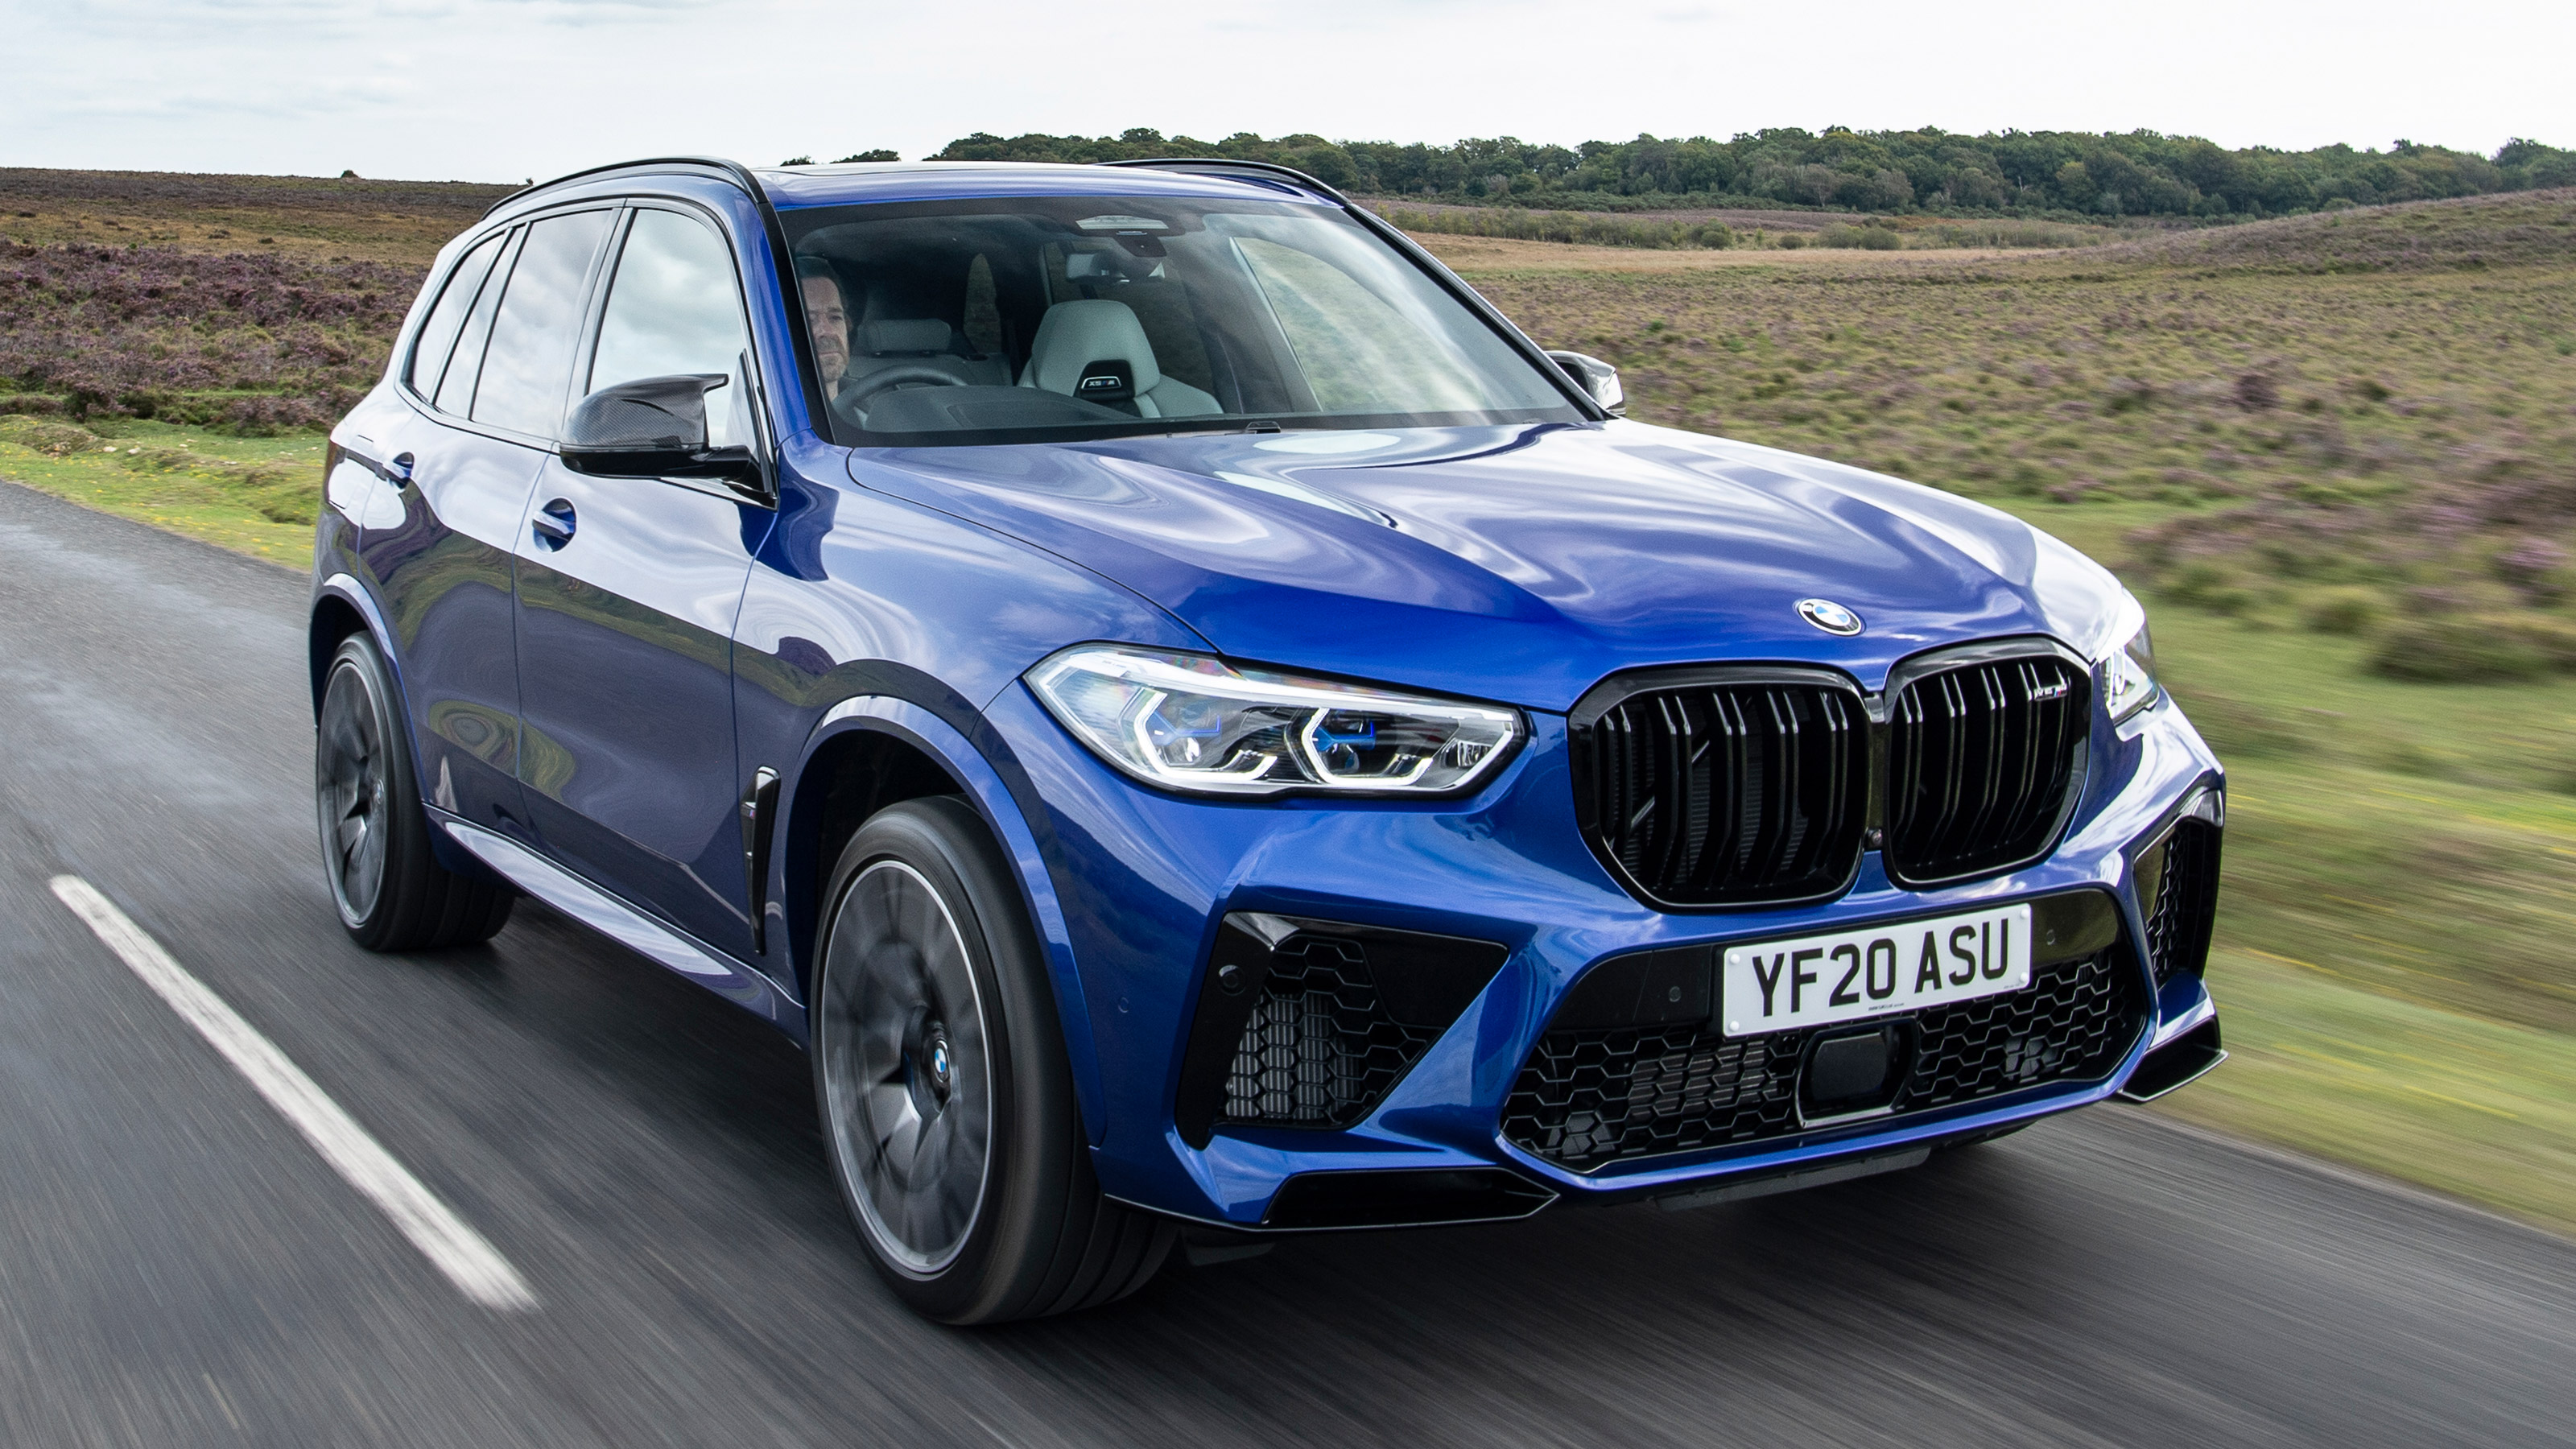 Bmw X5 M Suv Review Carbuyer